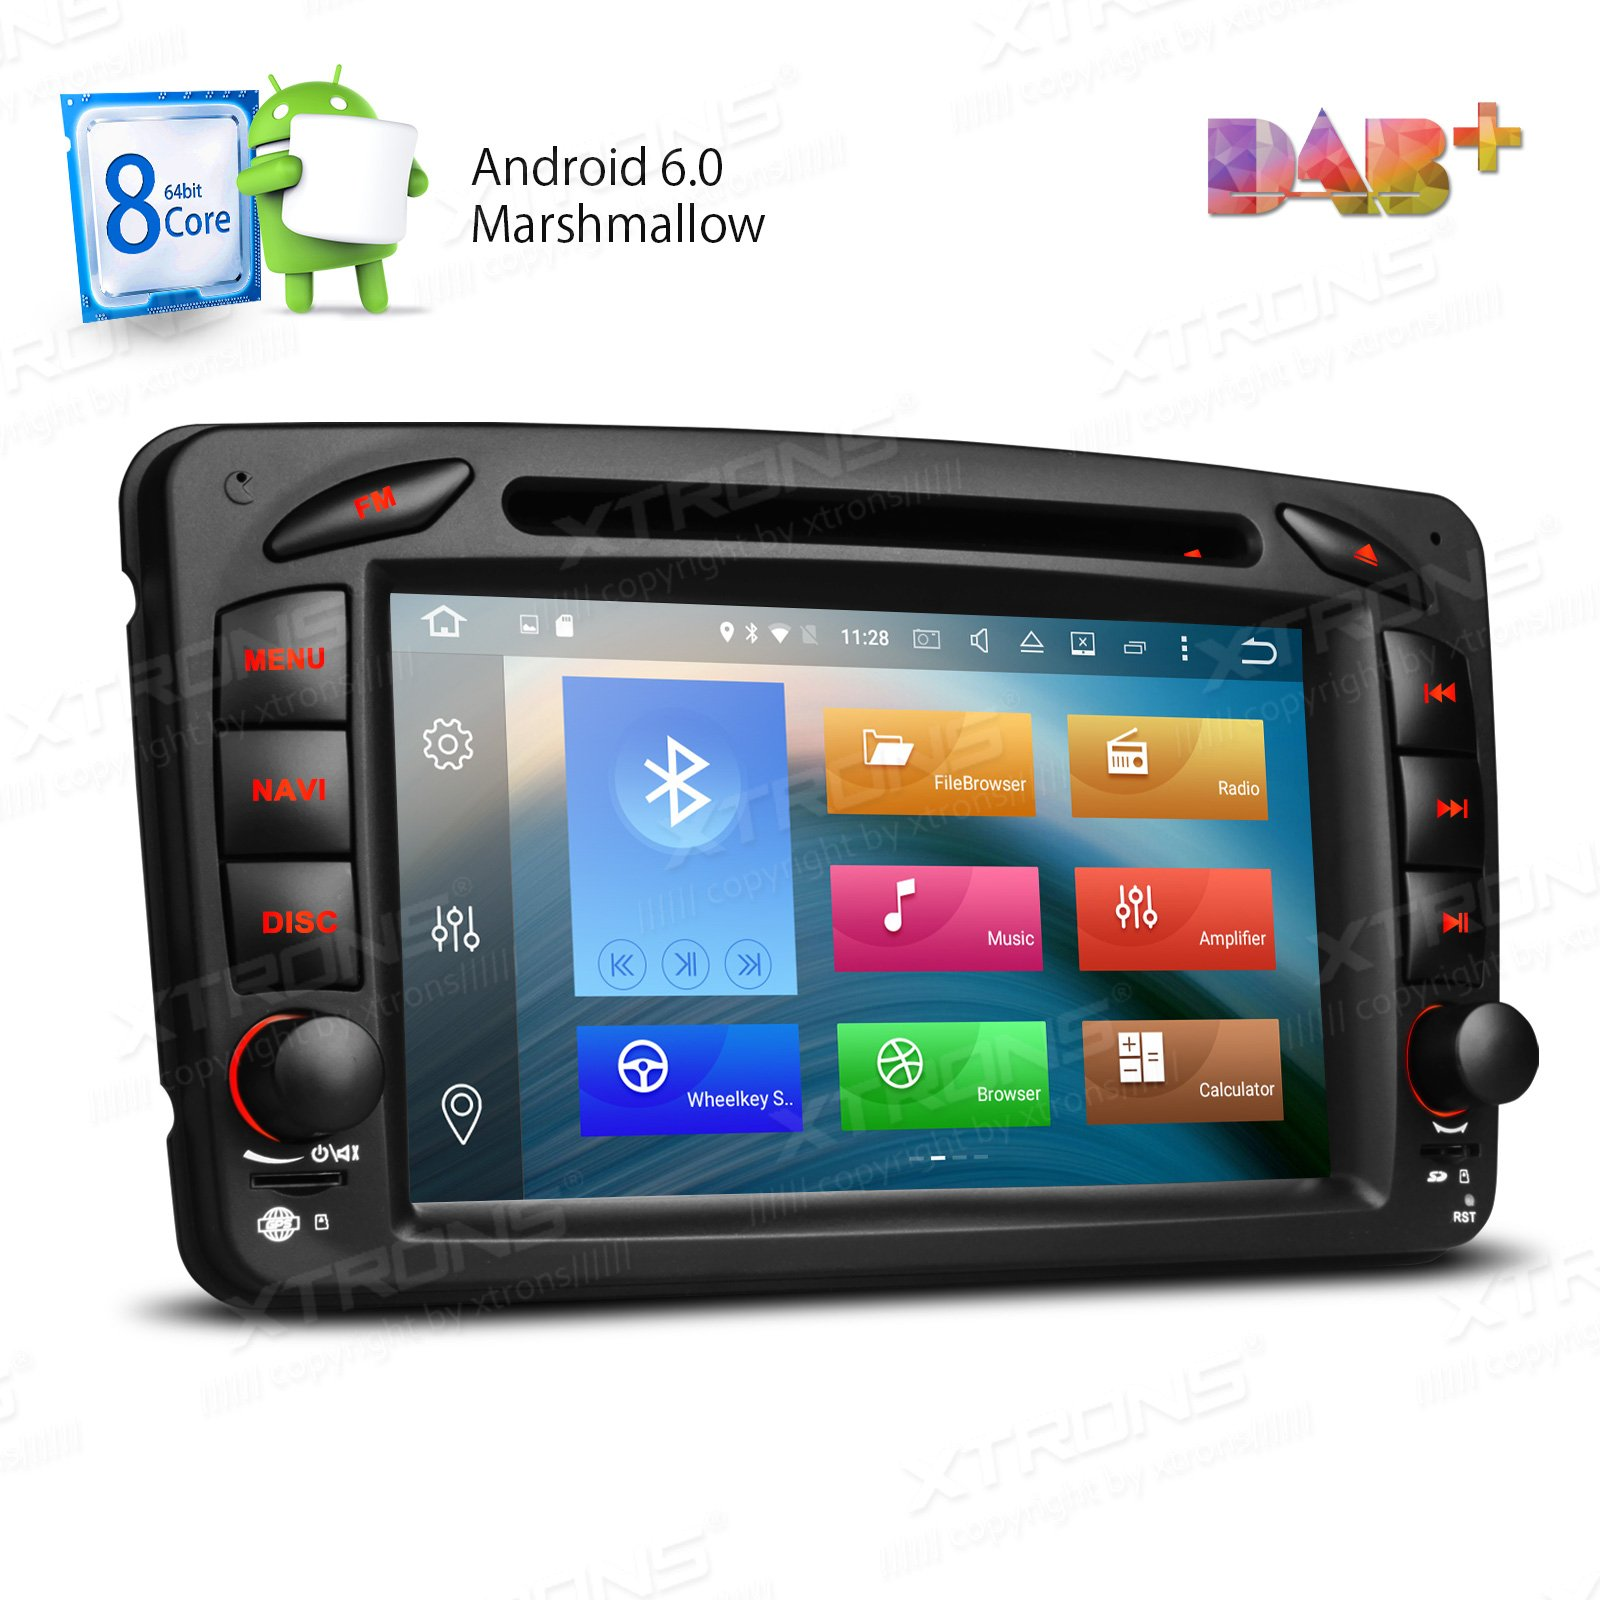 XTRONS Android 6.0 Octa-Core 64Bit 7 Inch Capacitive Touch Screen Car Stereo Radio DVD Player GPS CANbus Screen Mirroring Function OBD2 Tire Pressure Monitoring for Mercedes Benz W203 W209 W463 by XTRONS (Image #1)